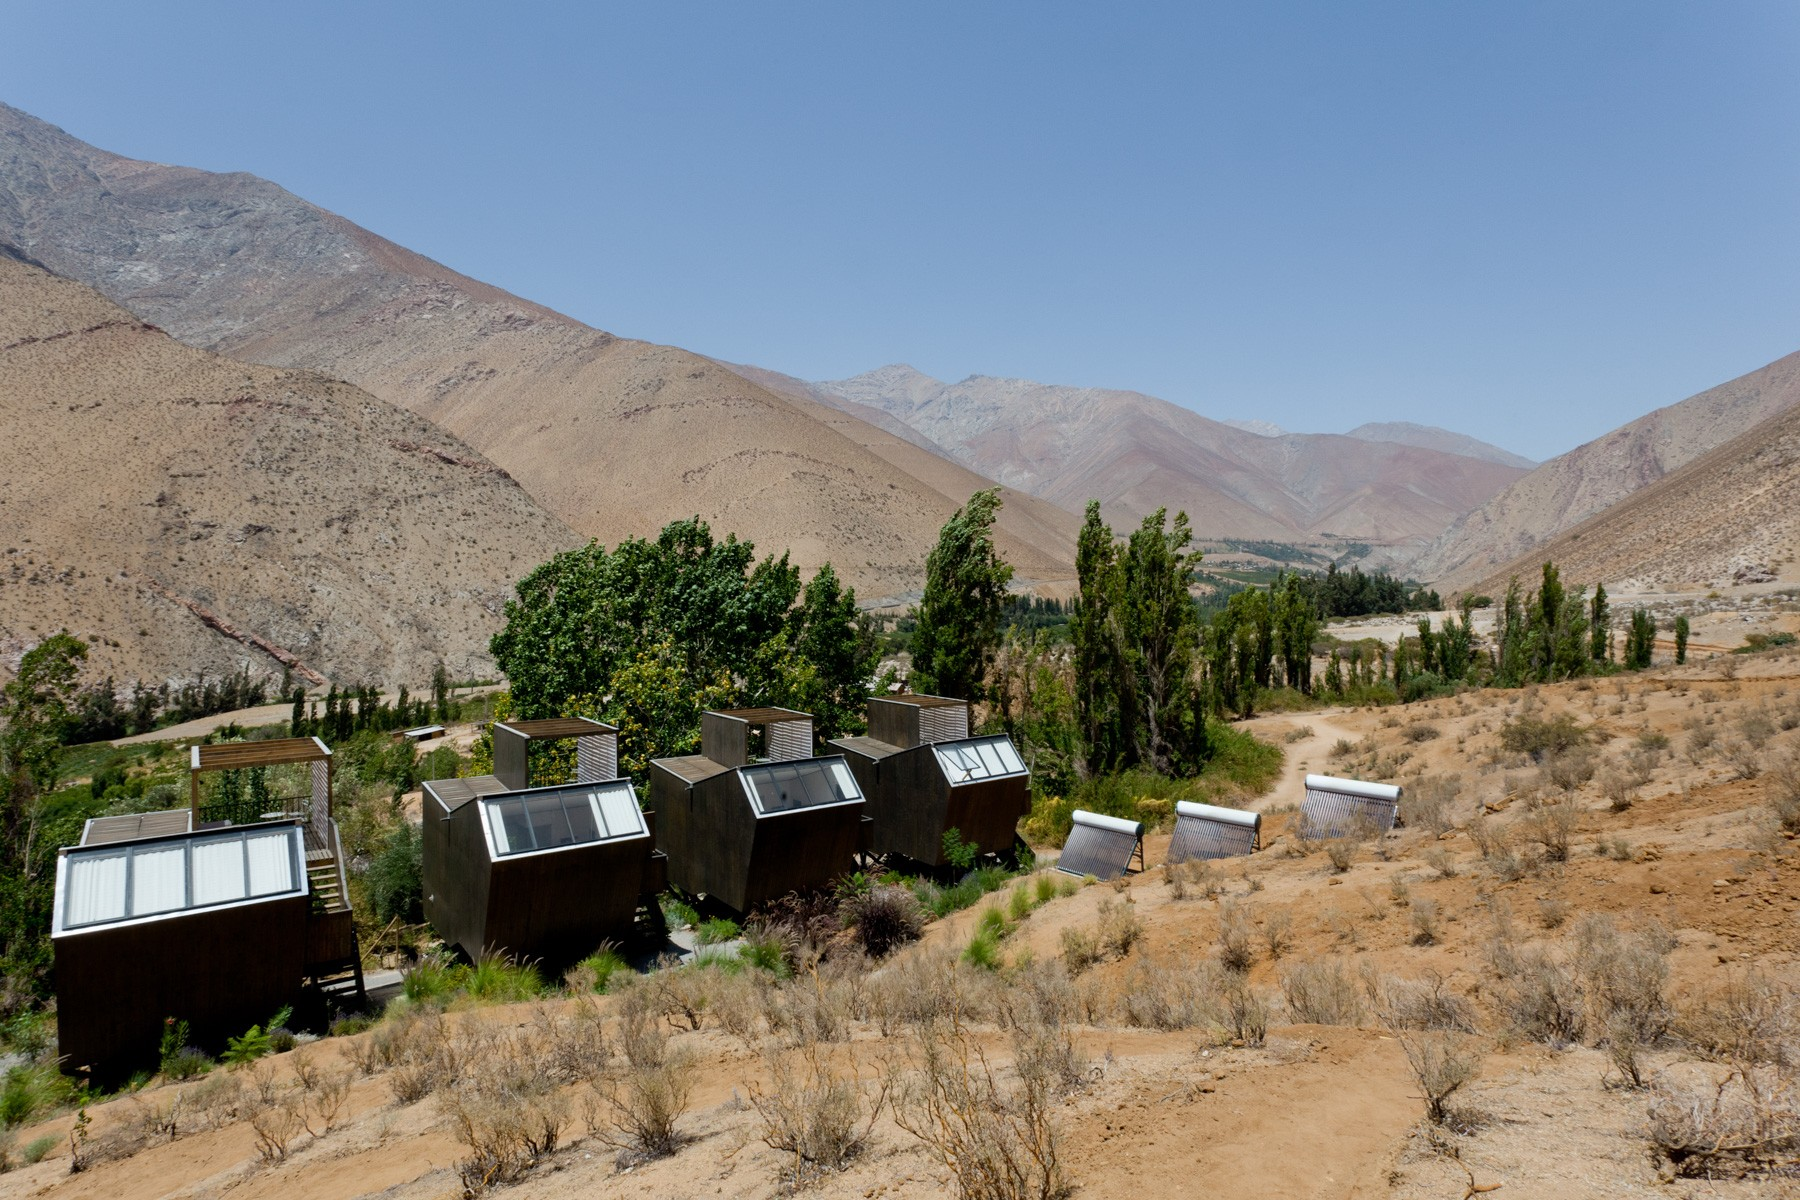 Elqui Domos Hotel Cabins and valley